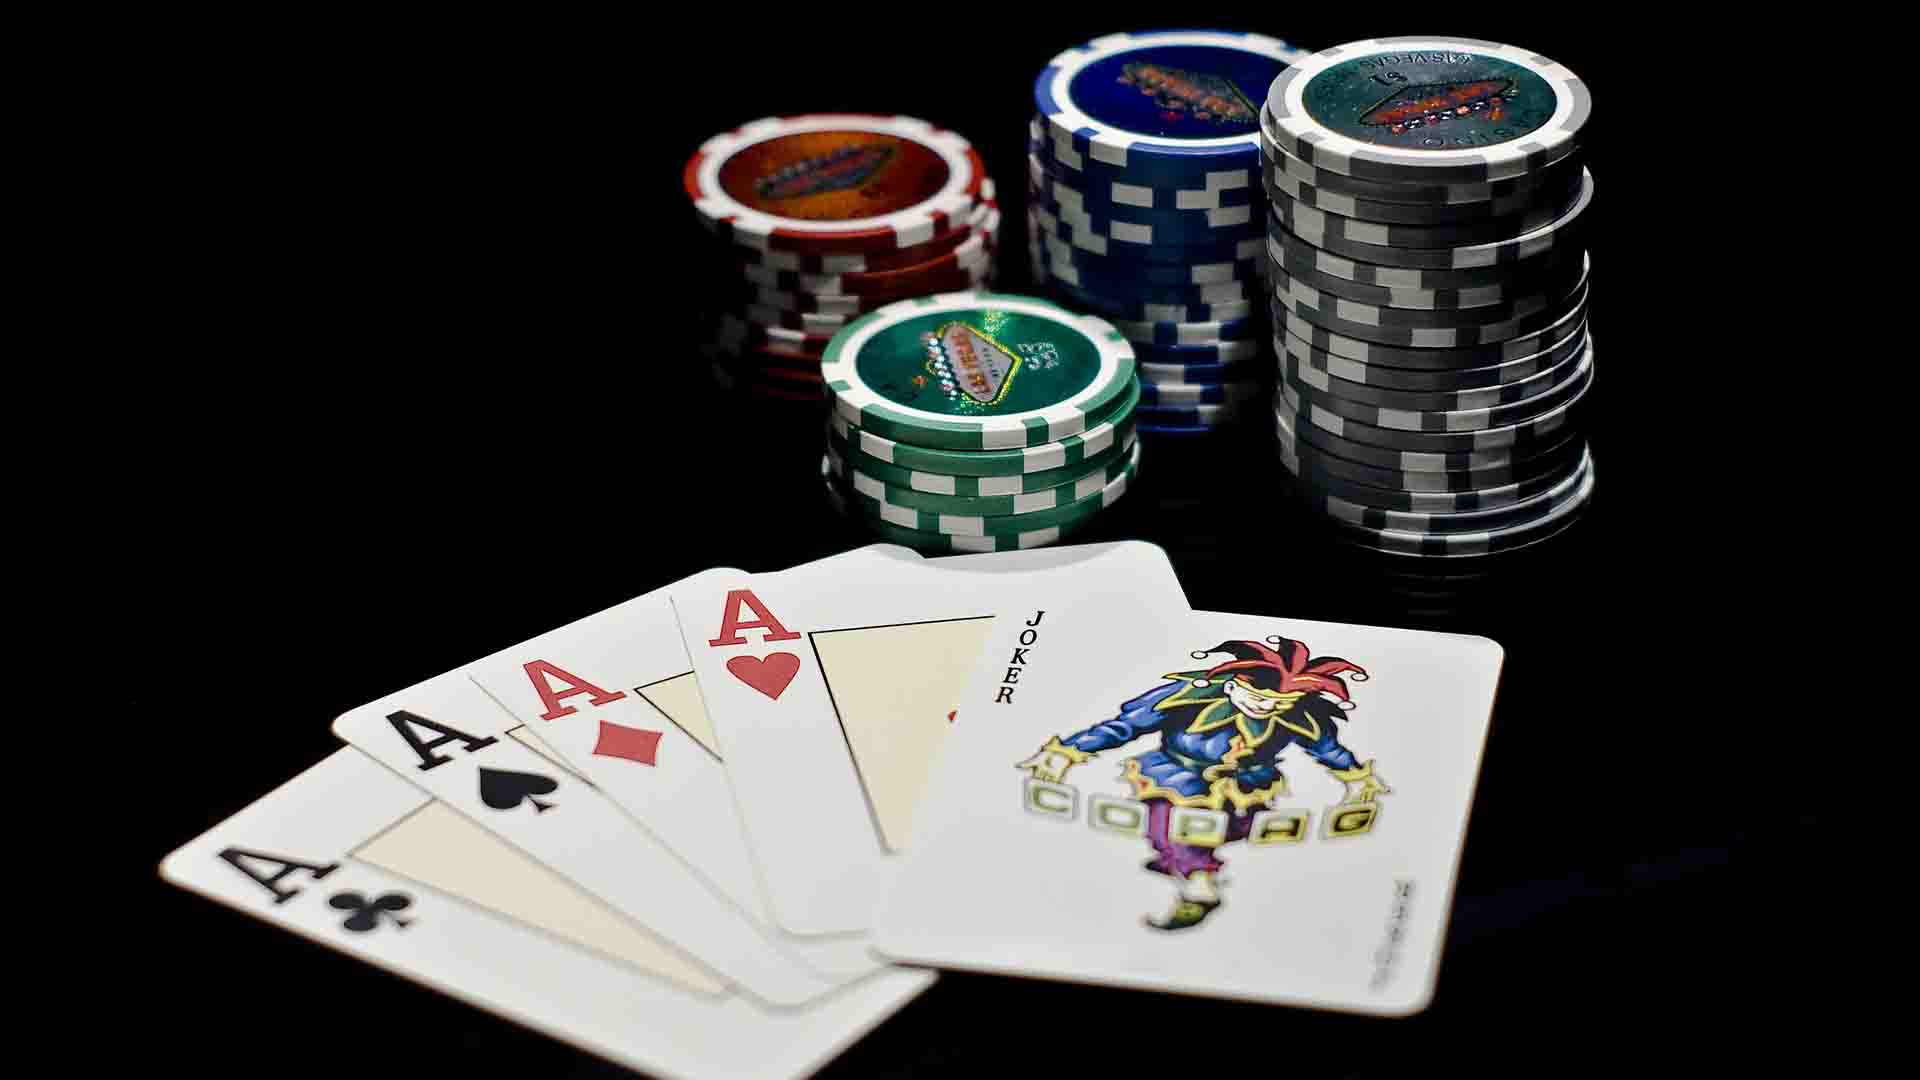 What are the reasons behind convenience of an online poker?